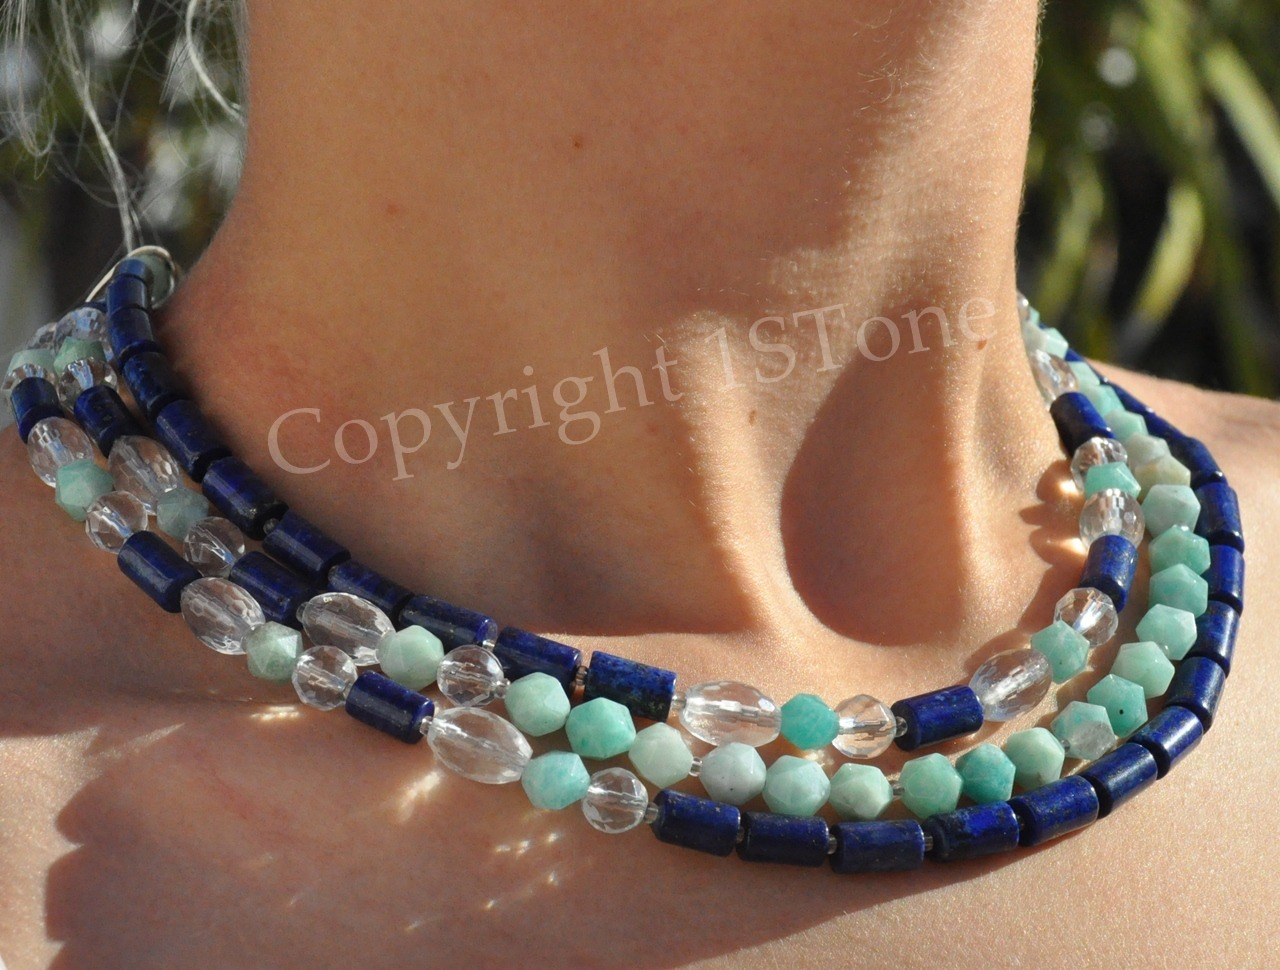 1STone Art & Design 3 Line Collar Amazonit, Lapis Lazuli and faceted Rock-Crystal